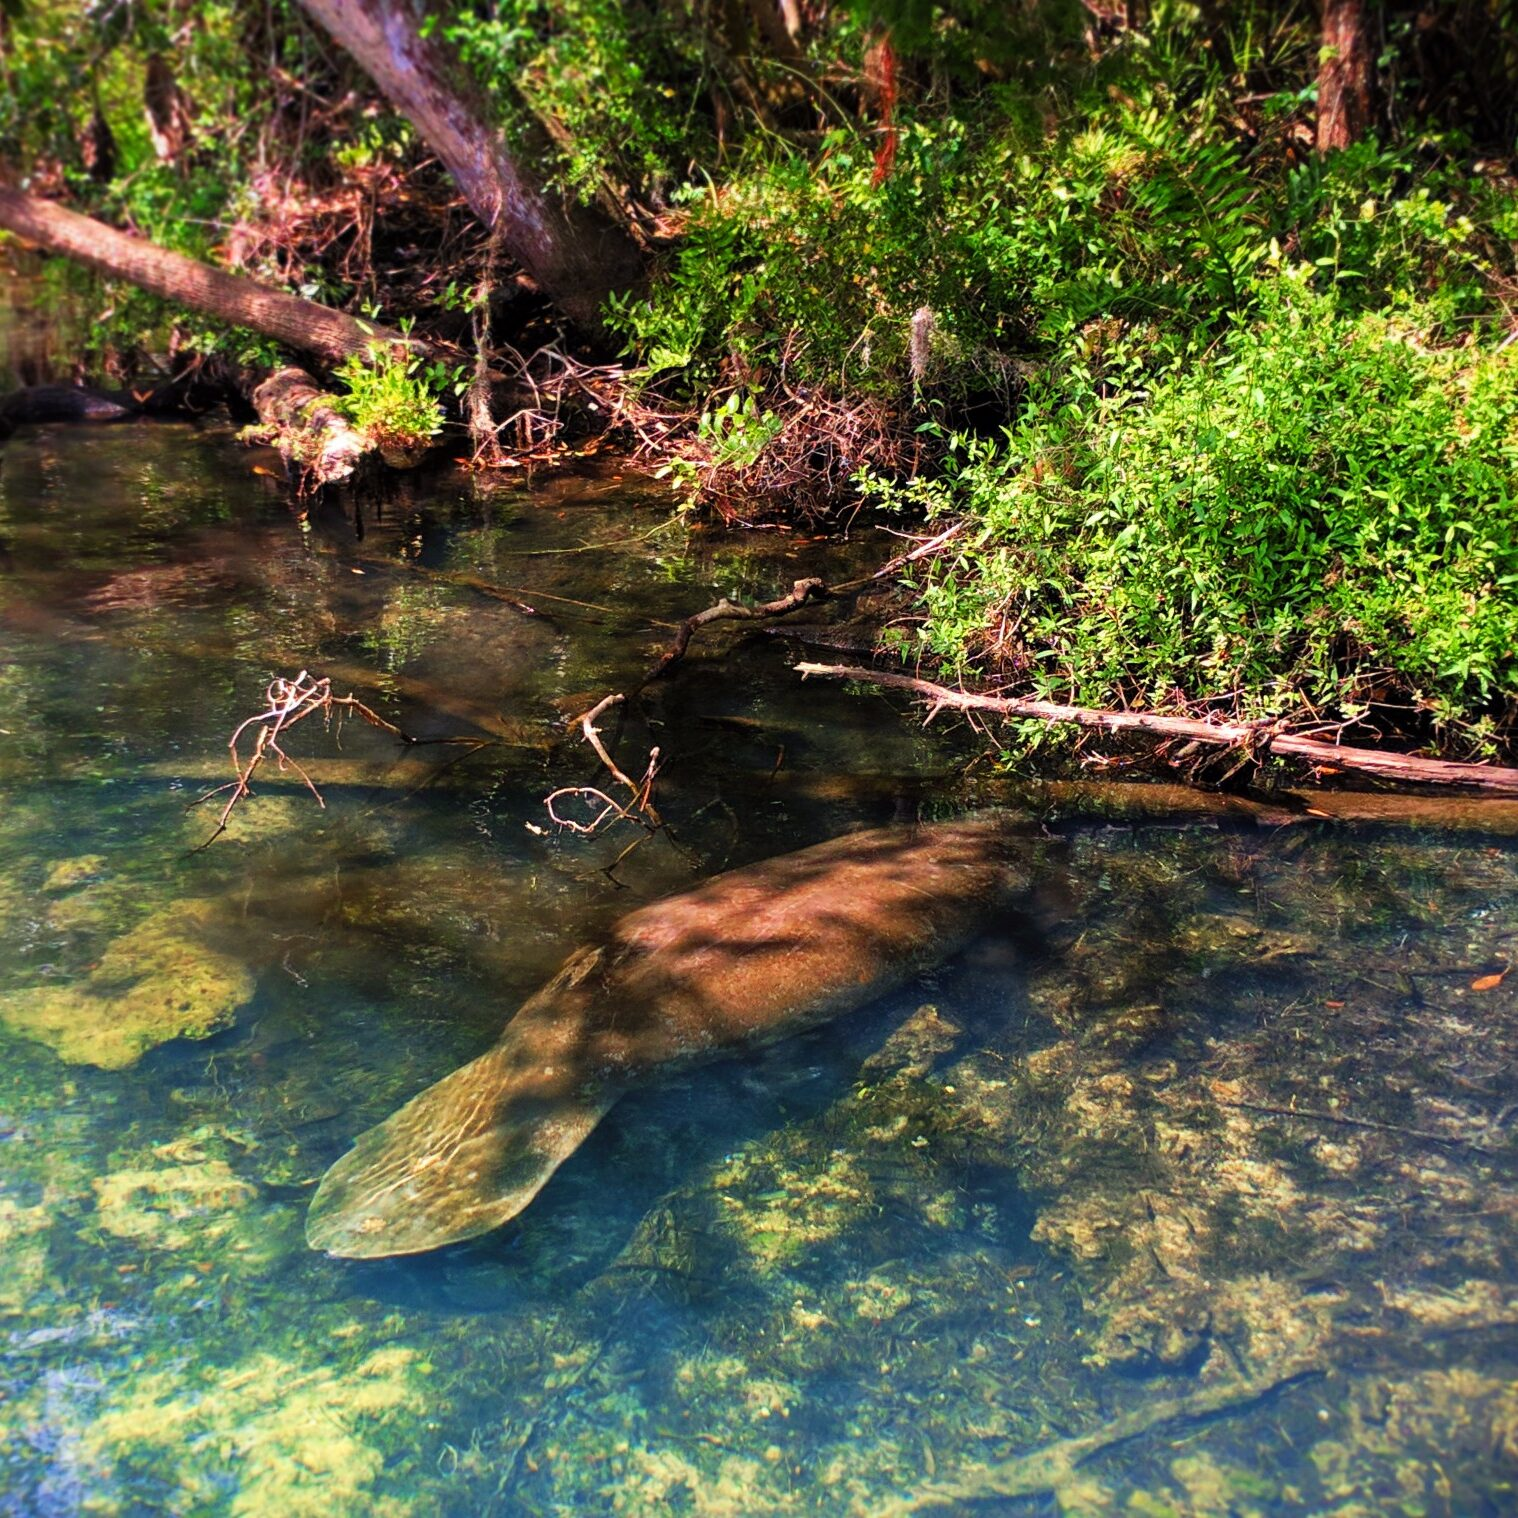 Manatee in river at Homosassa Springs State Park Florida 8